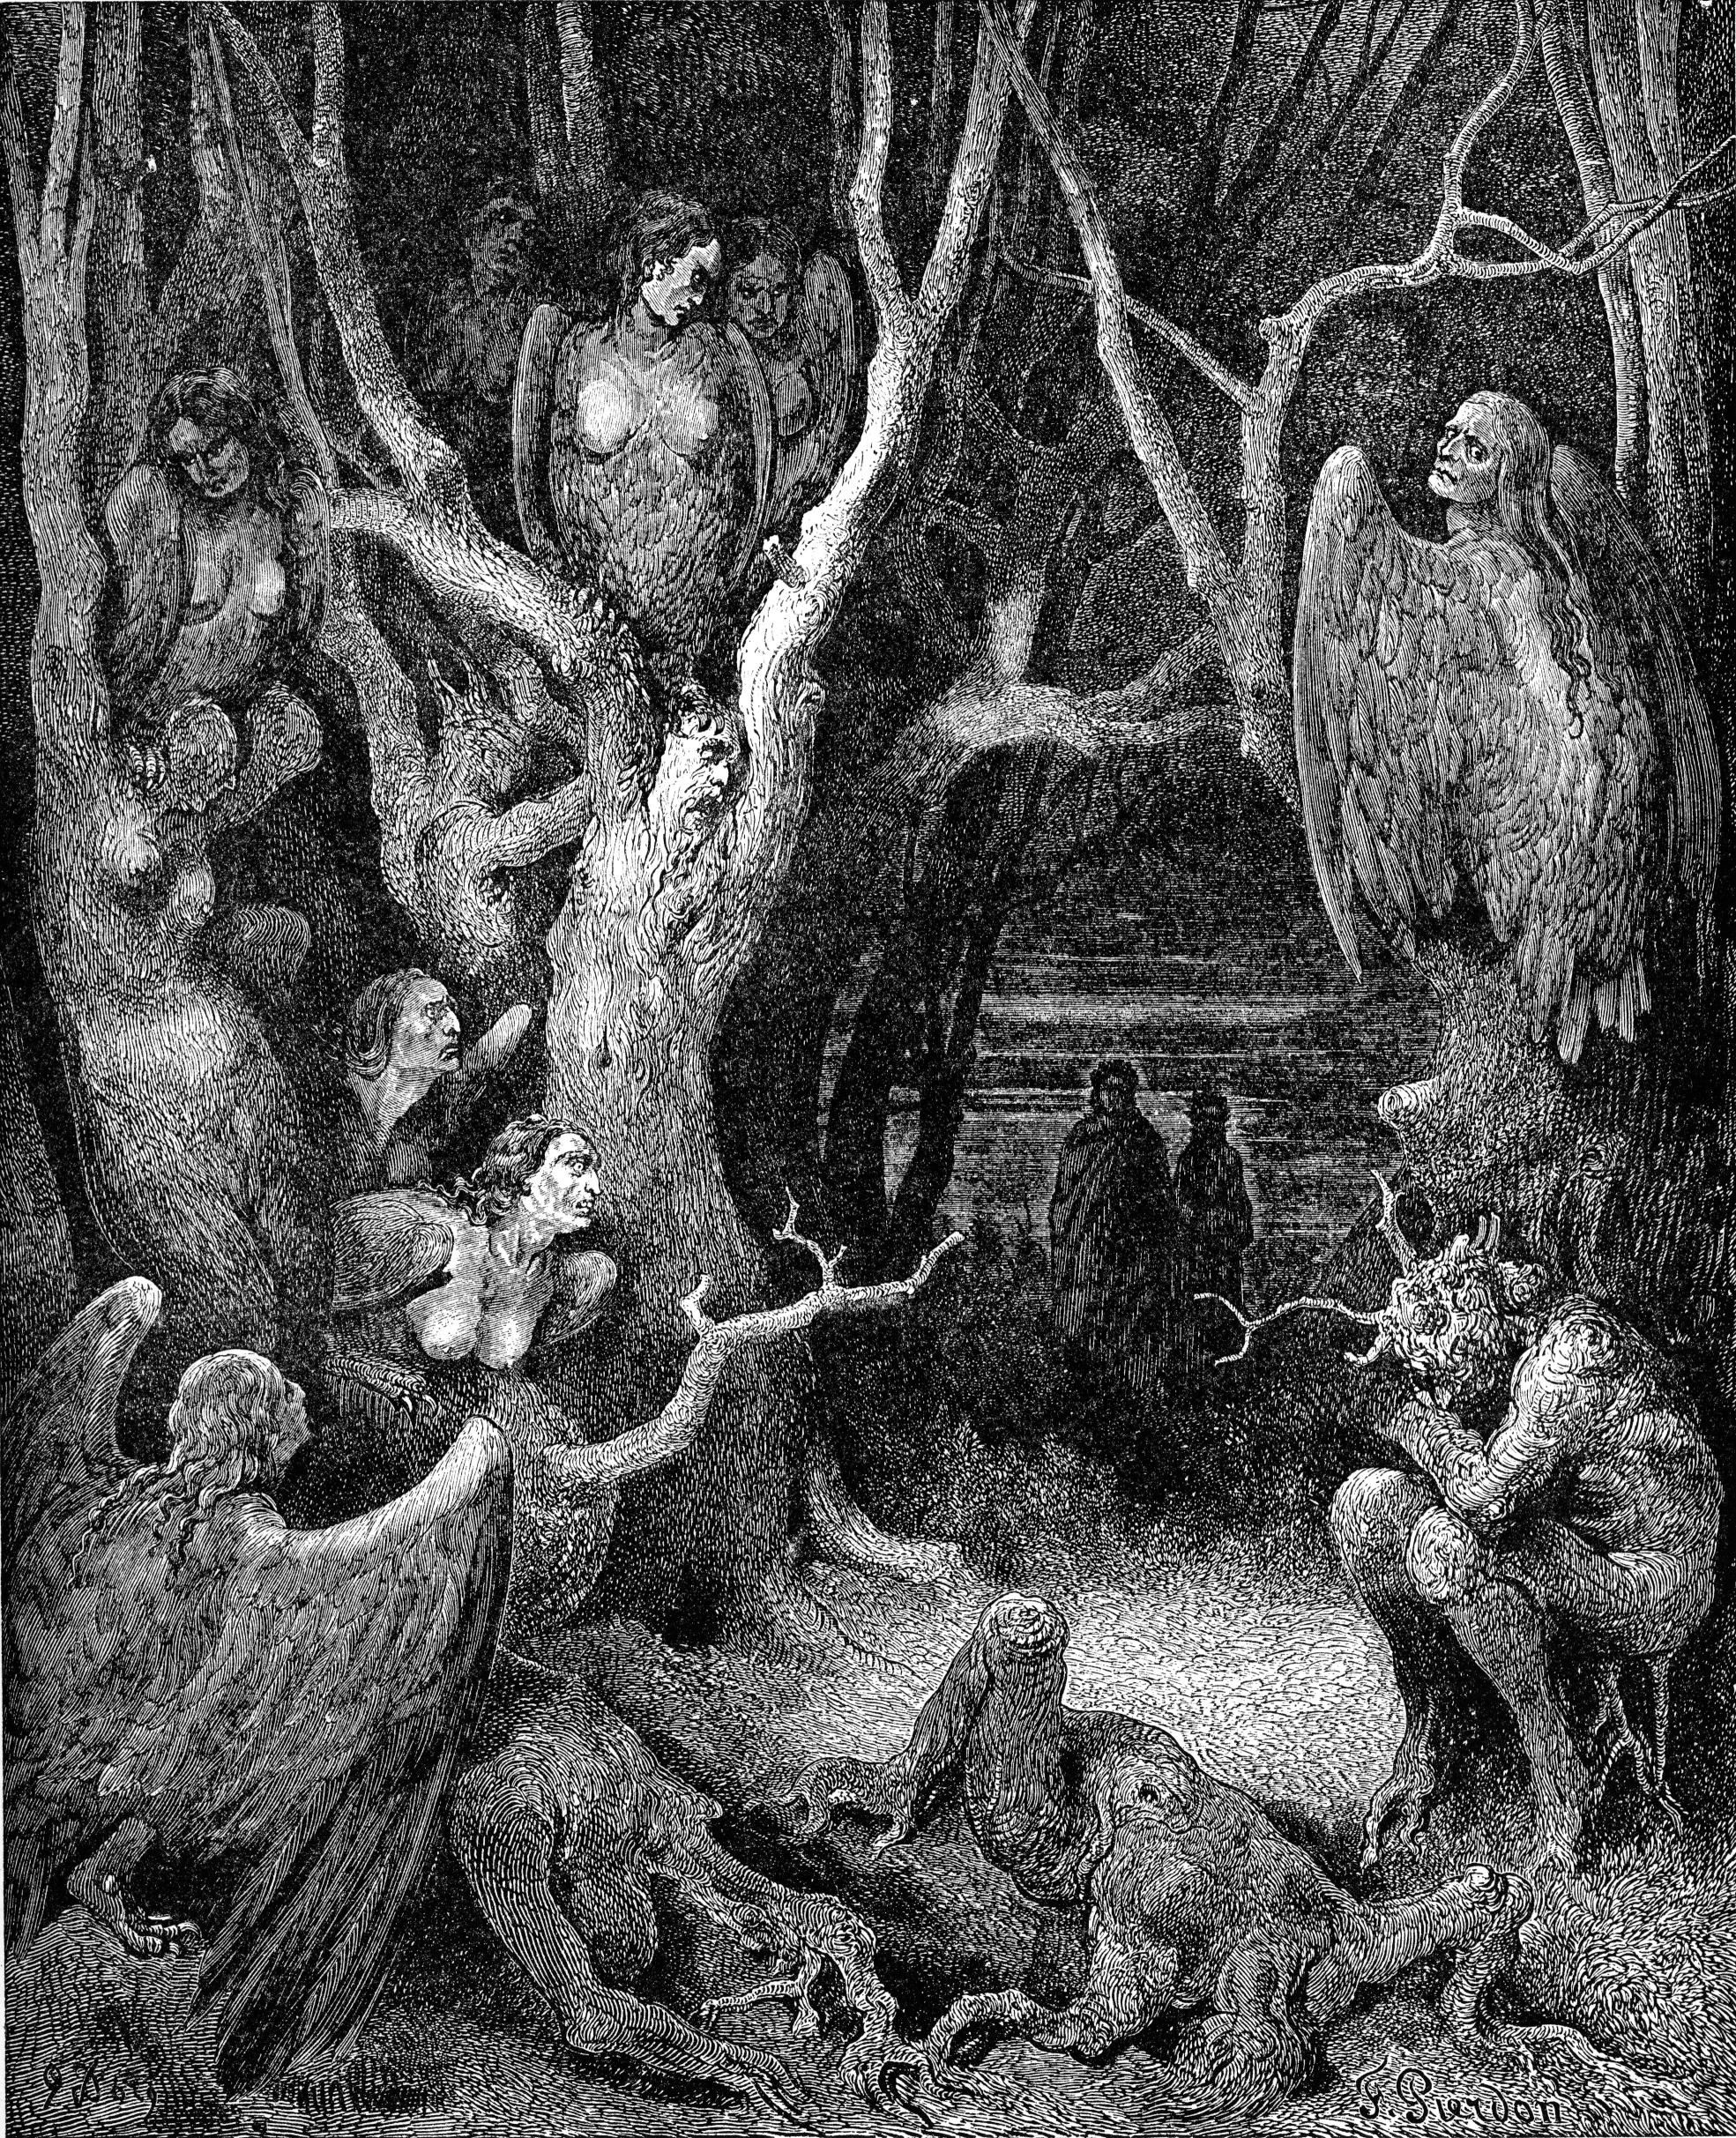 The Wood of the Self-Murderers: The Harpies and the Suicides